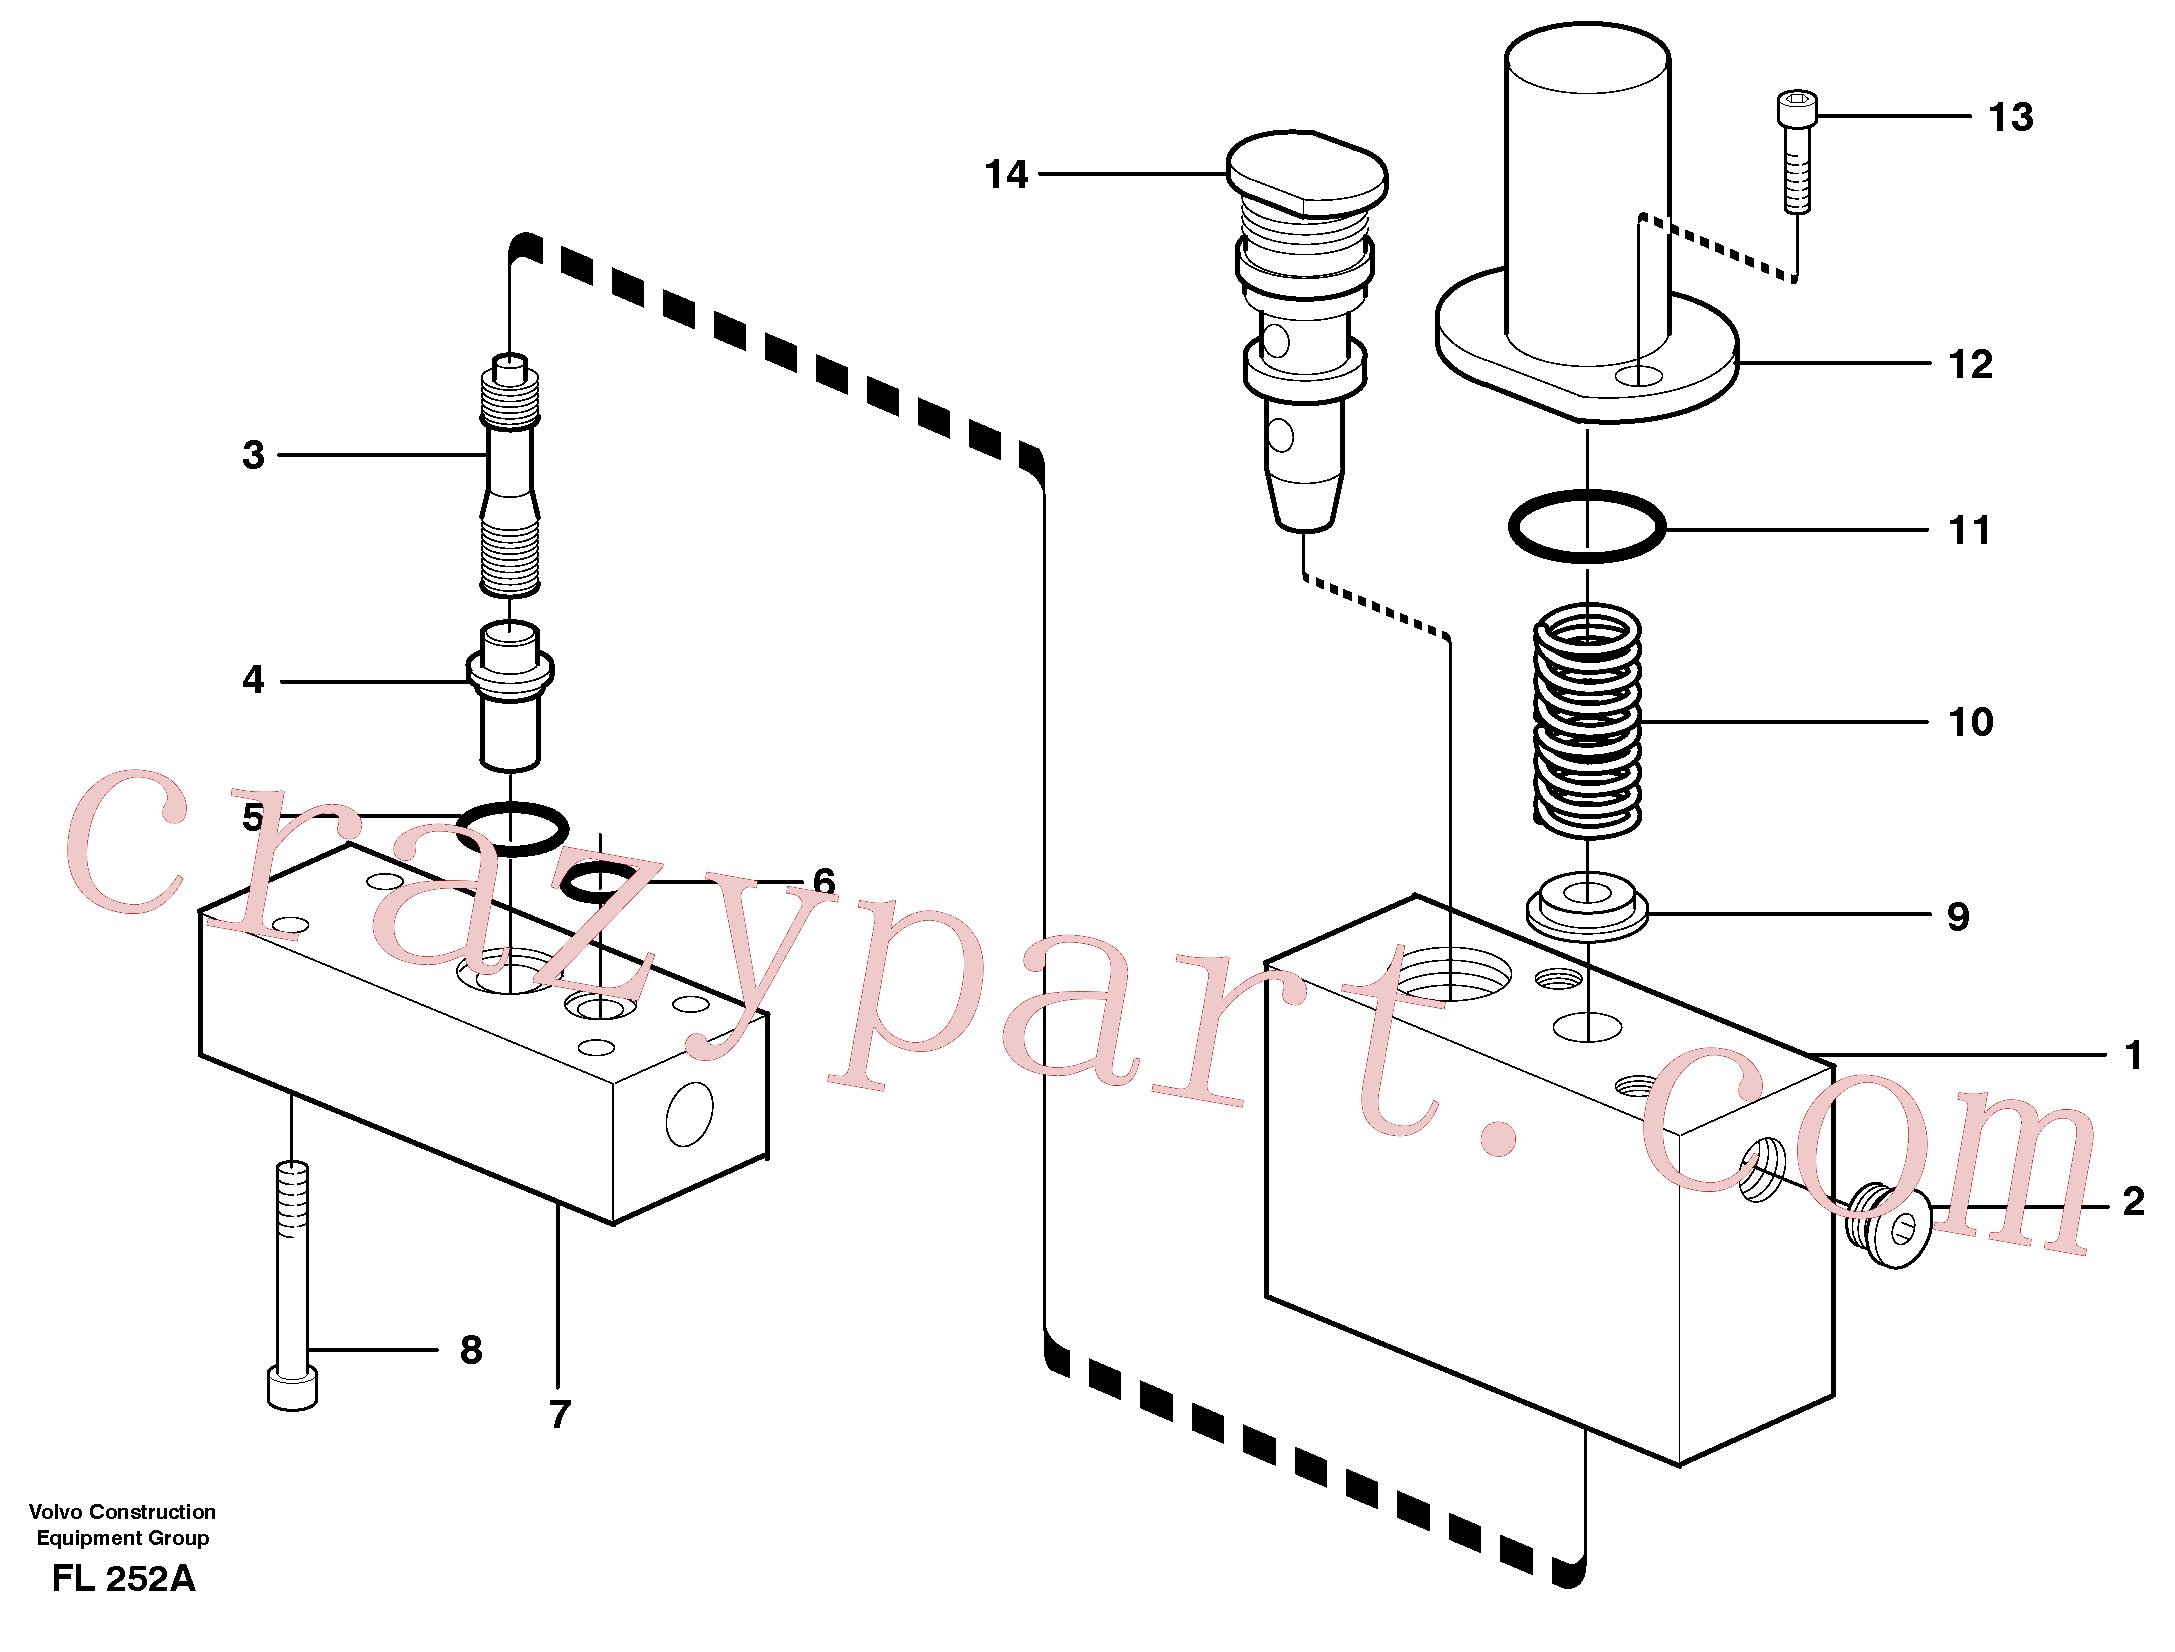 VOE14054983 for Volvo Thermostatic valve(FL252A assembly)